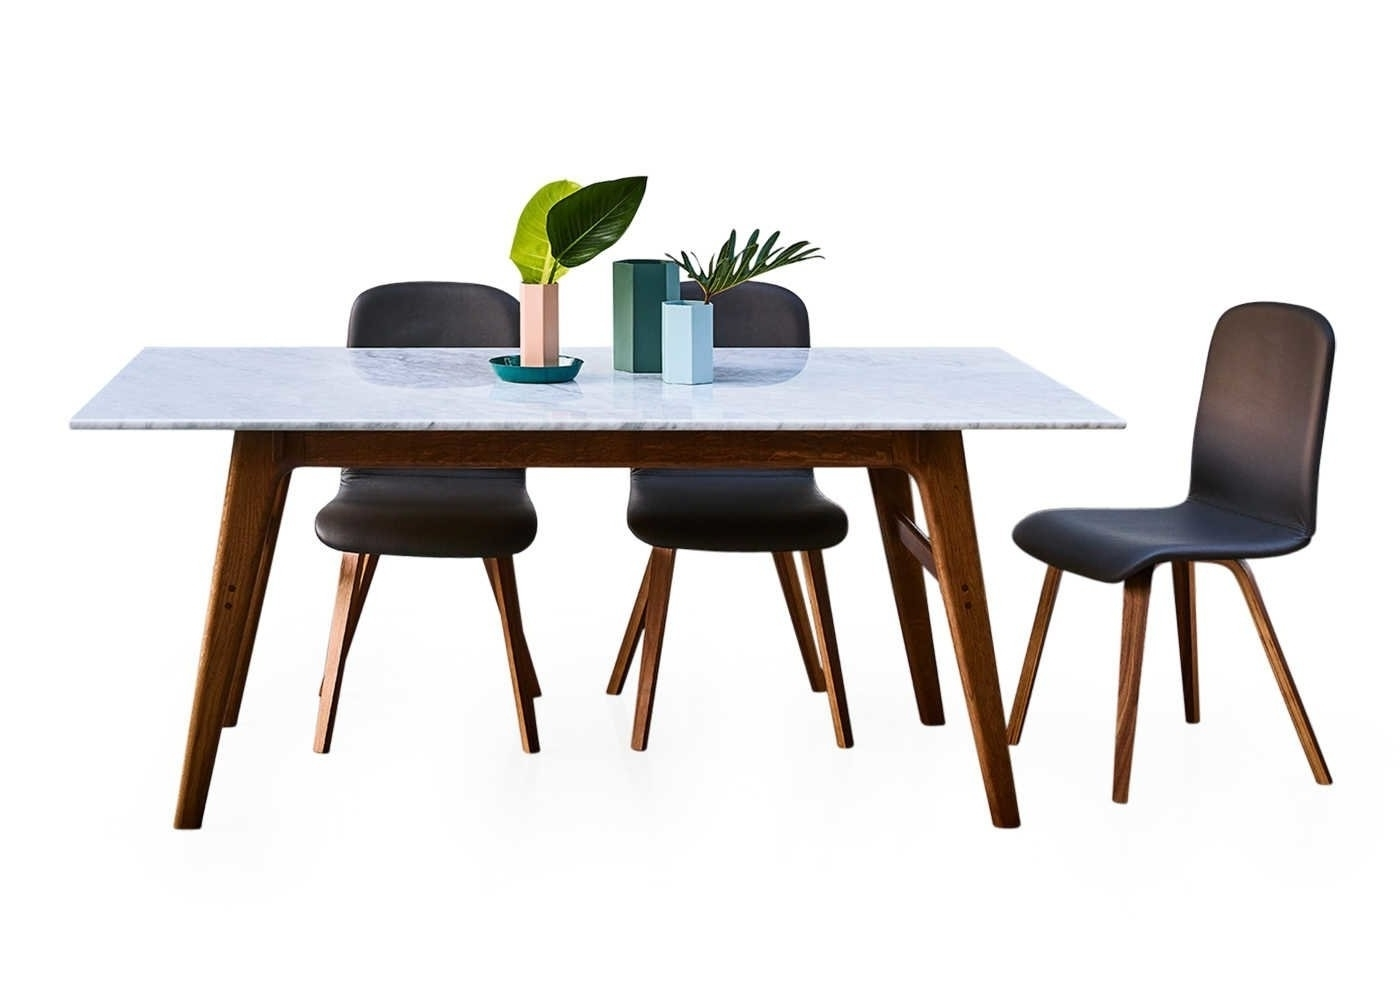 Heal's Intended For Latest Marble Effect Dining Tables And Chairs (View 8 of 25)